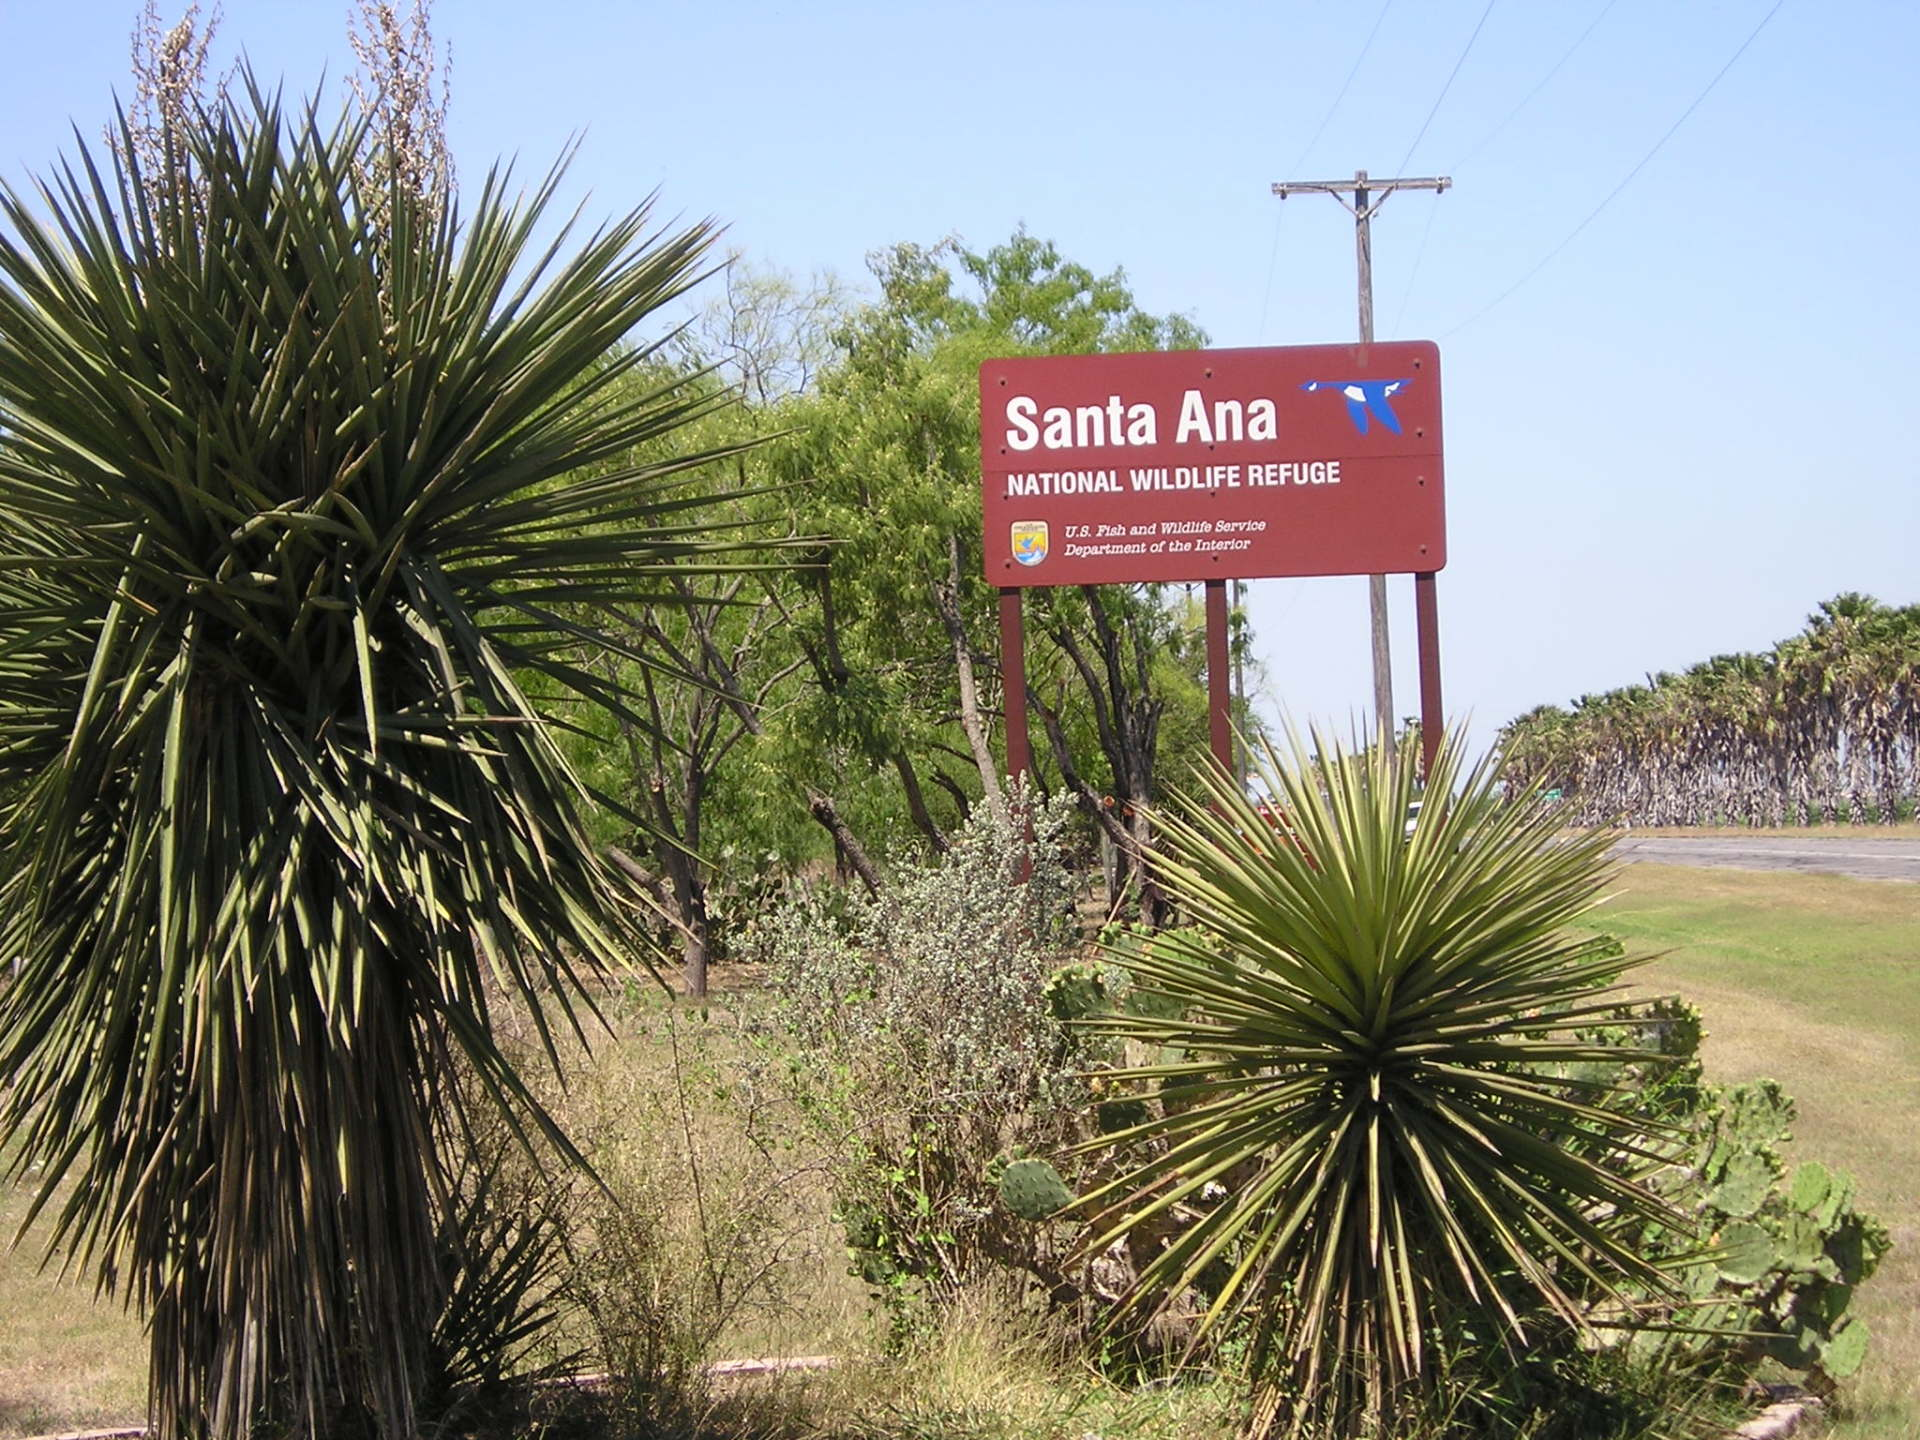 Take Action to Protect Santa Ana National Wildlife Refuge in Texas